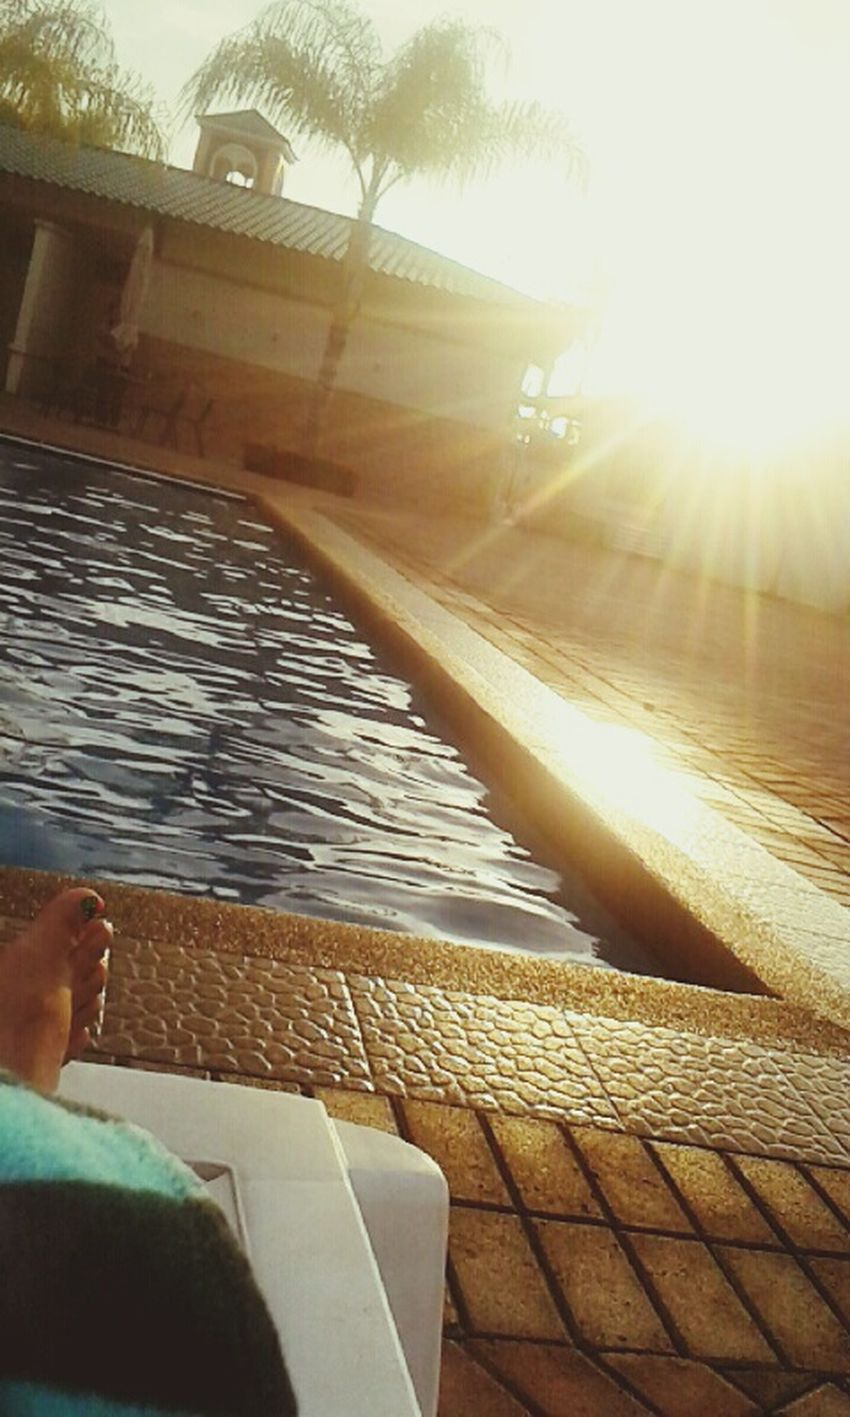 My favorite place, pool time and sunset. Relaxing Enjoying Life Cheese!